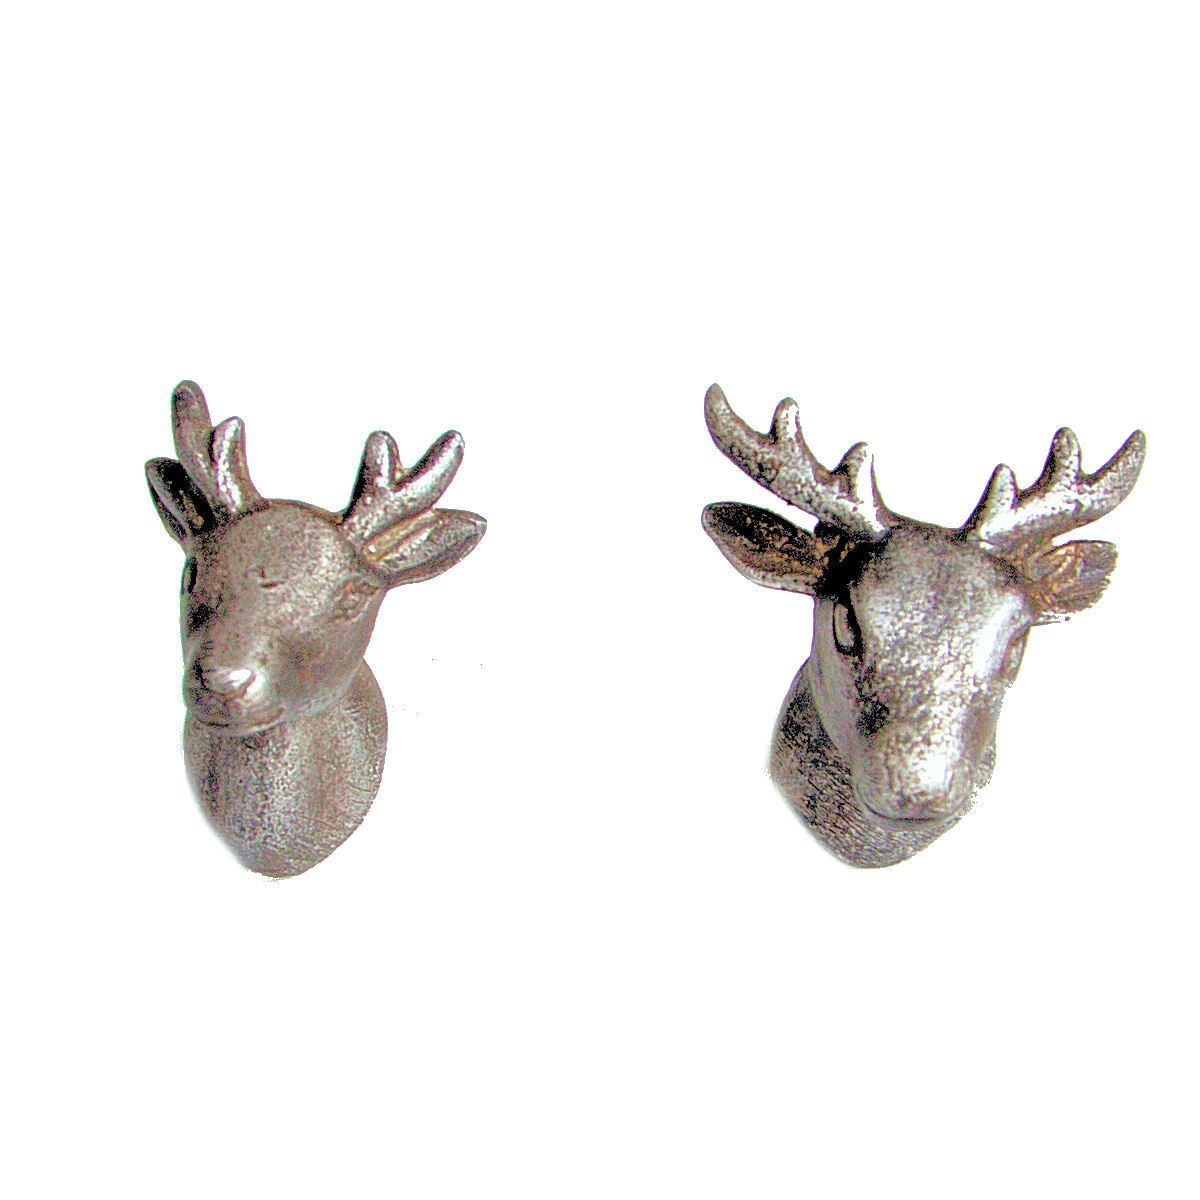 Mr & Mrs Stag Deer Metal Door Knobs Furniture Animal. Diaper Change Table. Office Etiquette Eating At Your Desk. Custom Drawer Inserts. Oasis Help Desk. Mirror Chester Drawers. Office Depot Home Office Desk. Dual Monitor Desk Mount. Kids Desk Amazon